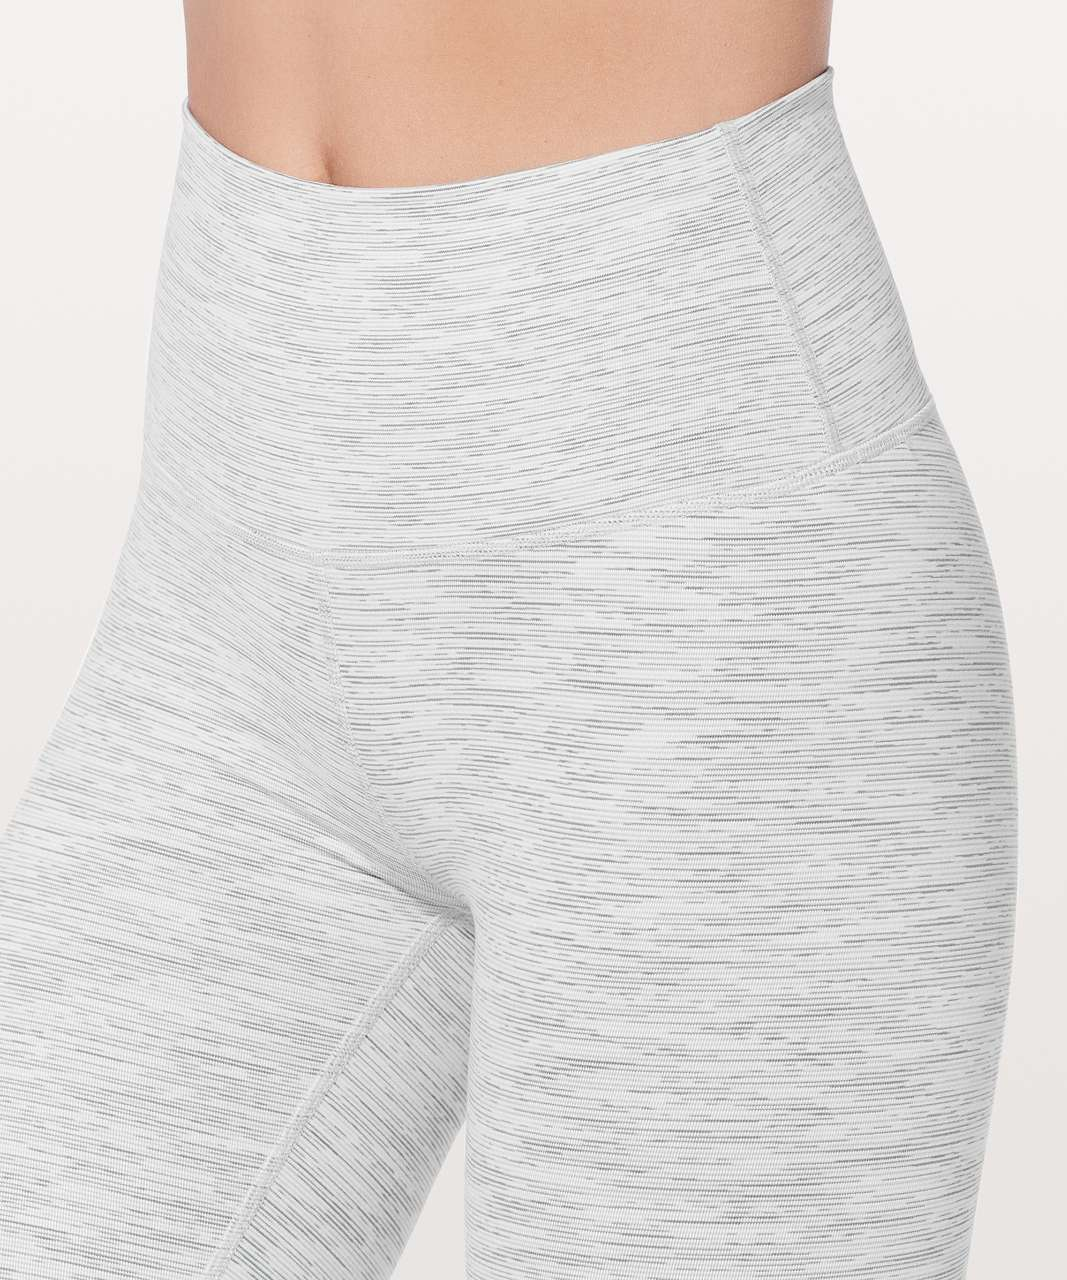 "Lululemon Wunder Under Hi-Rise Tight *28"" - Wee Are From Space Nimbus Battleship"